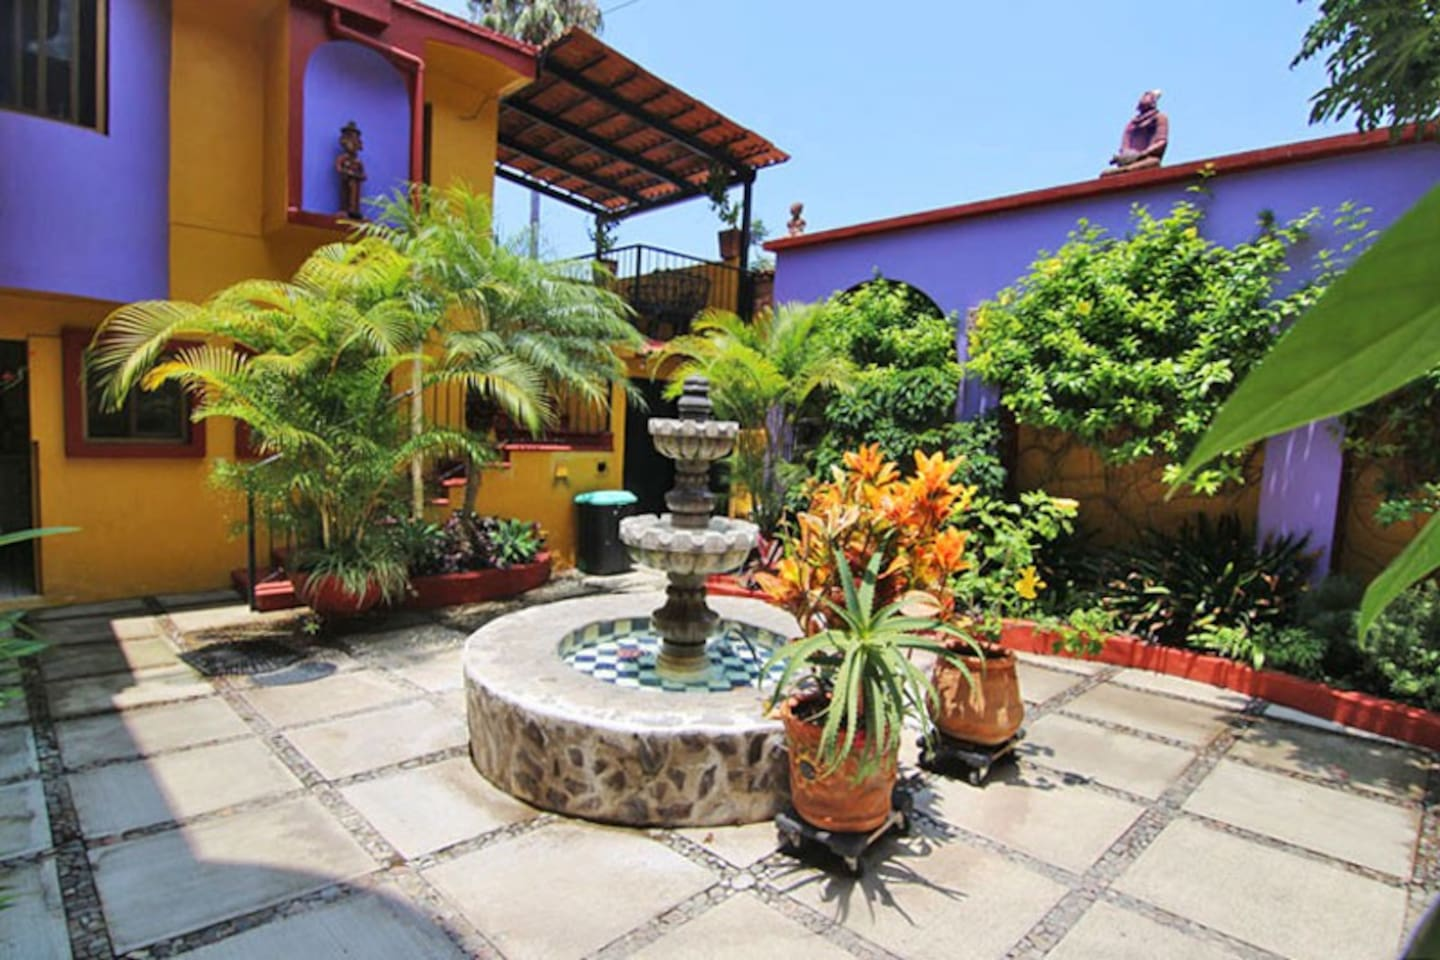 Courtyard with fountain